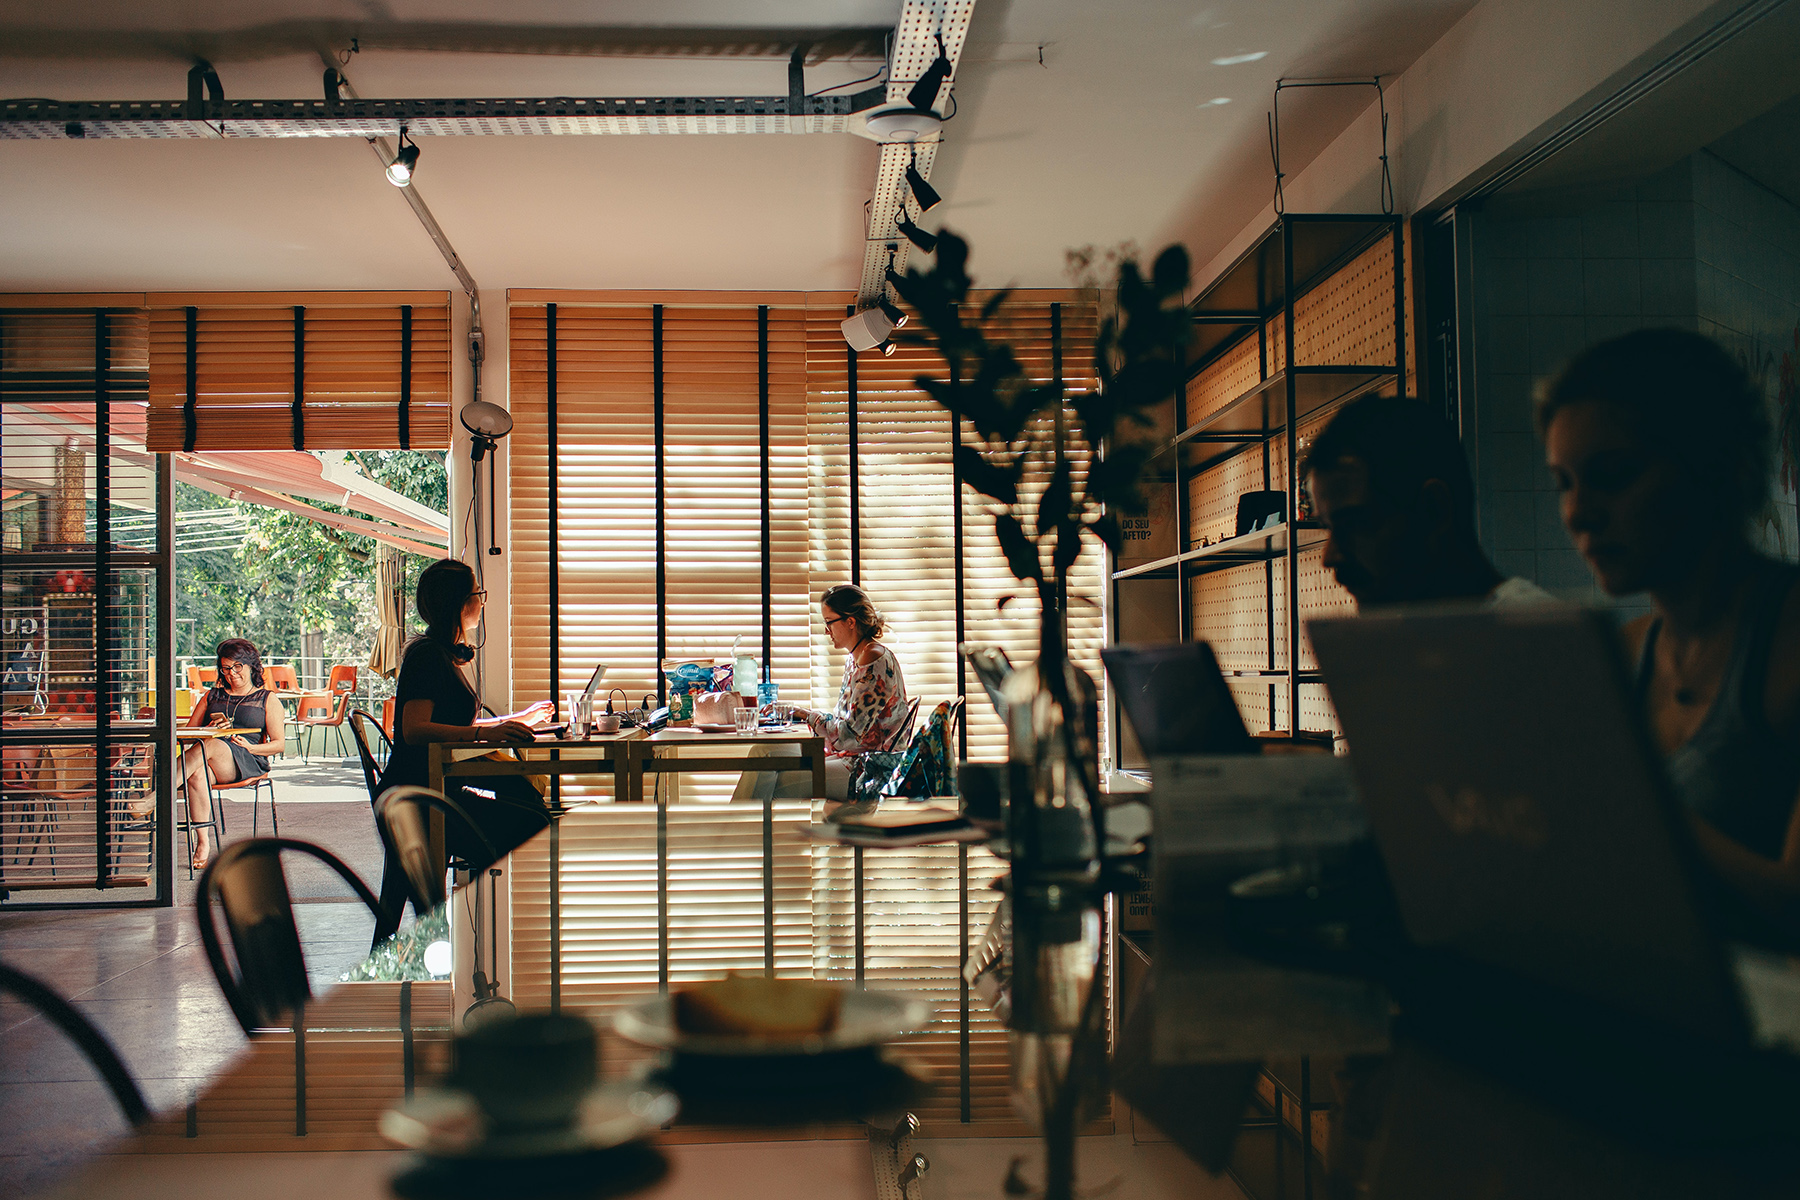 Freelancers working at a coworking space